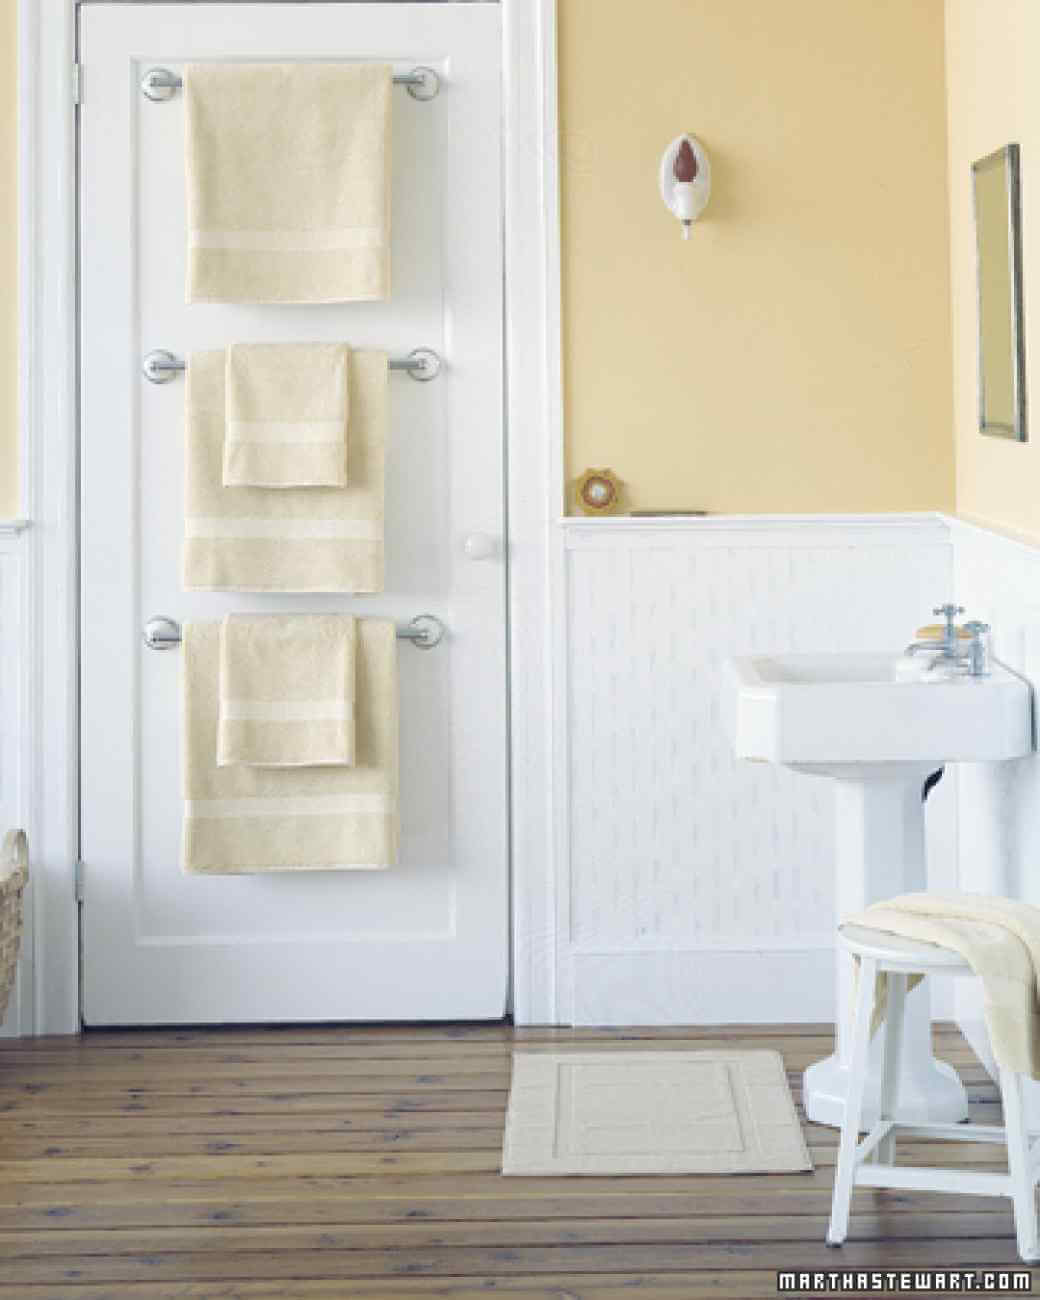 Small bathroom storage ideas - 4 An Example Of Vertical Space